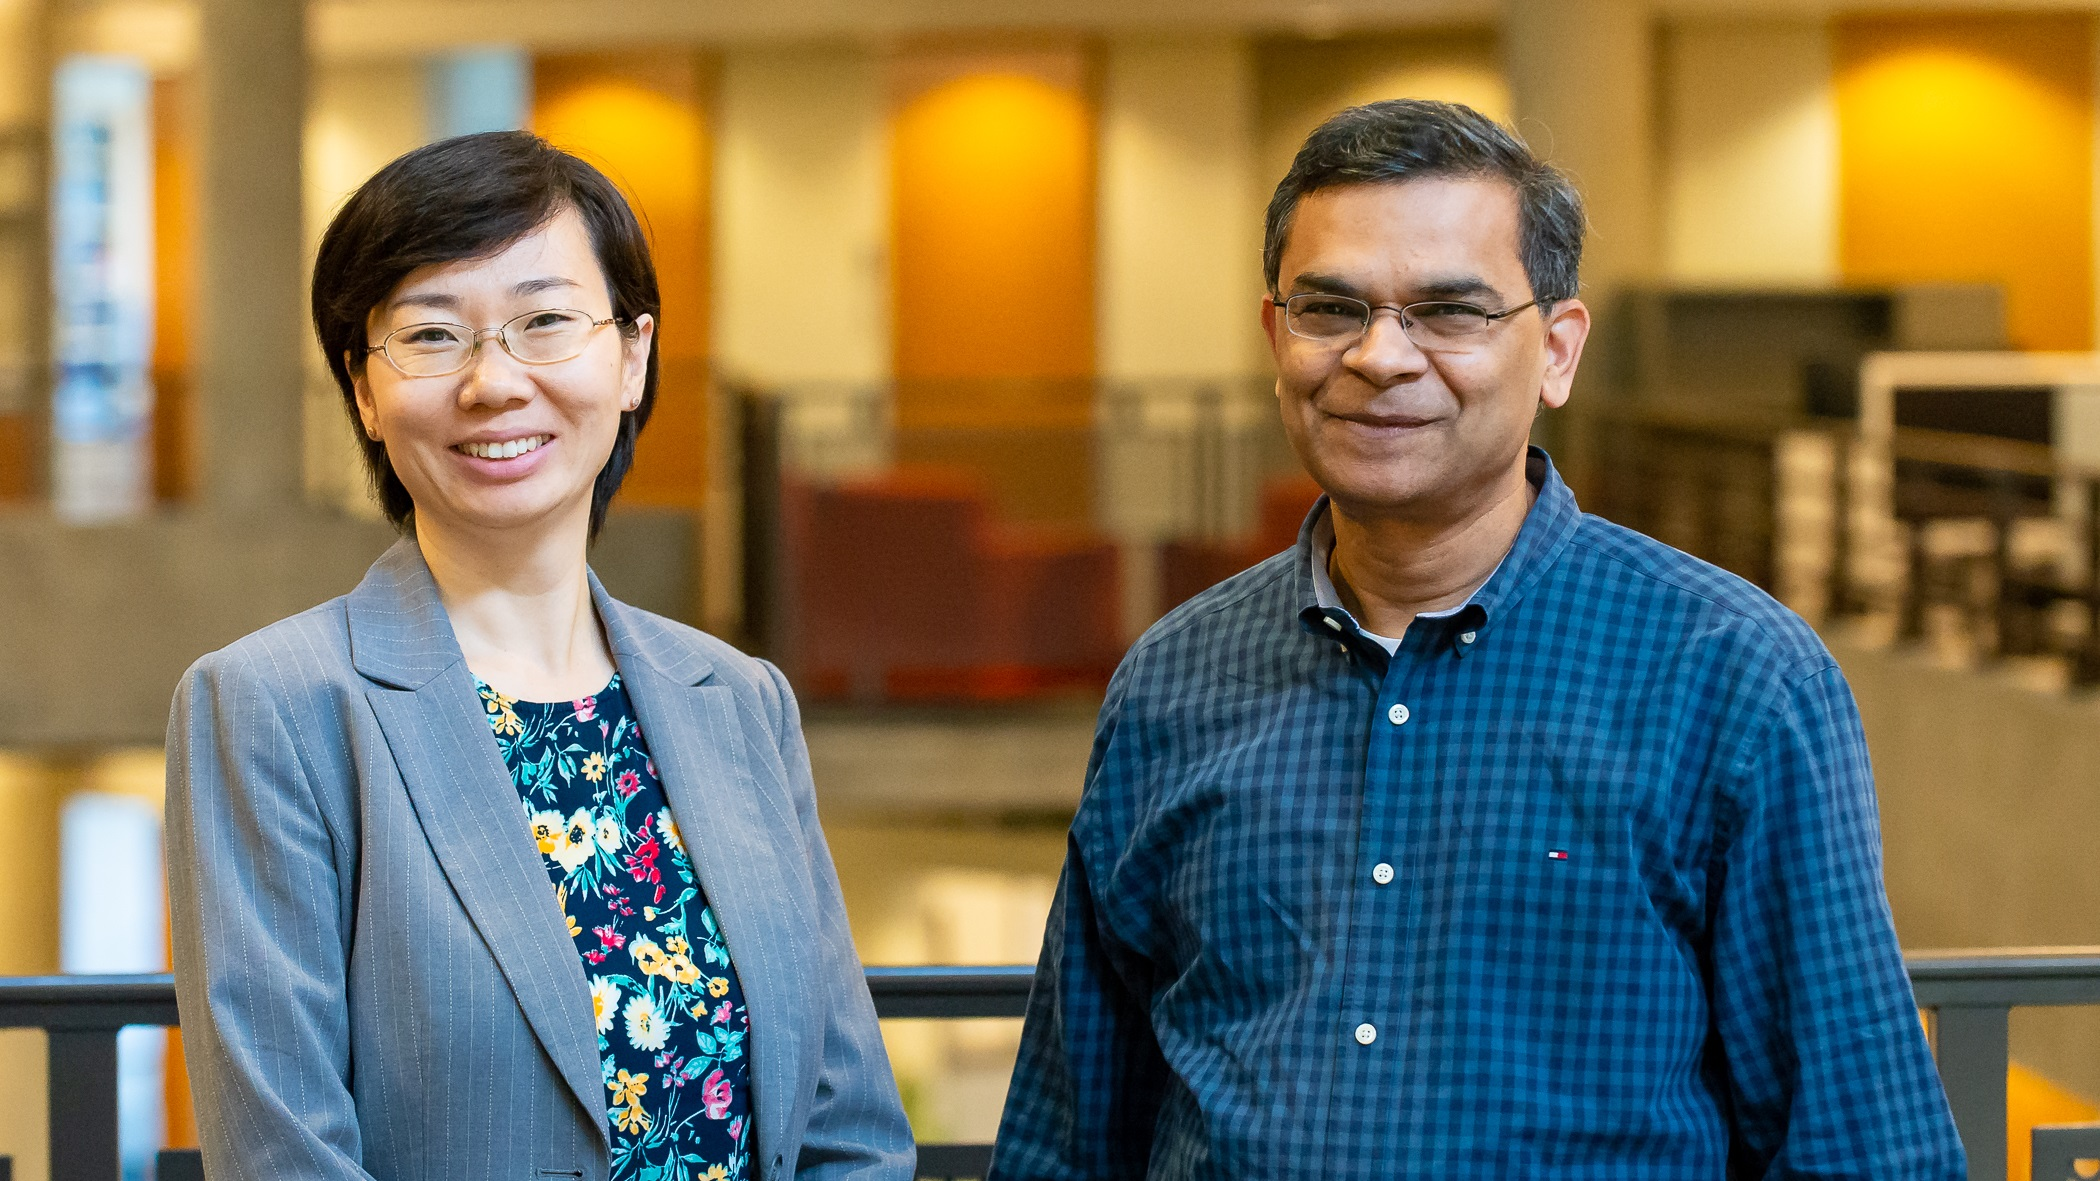 Jiali Wang and Rao Kotamarthi were co-authors on the Geoscientific Model Development that focused on the planetary boundary layer.